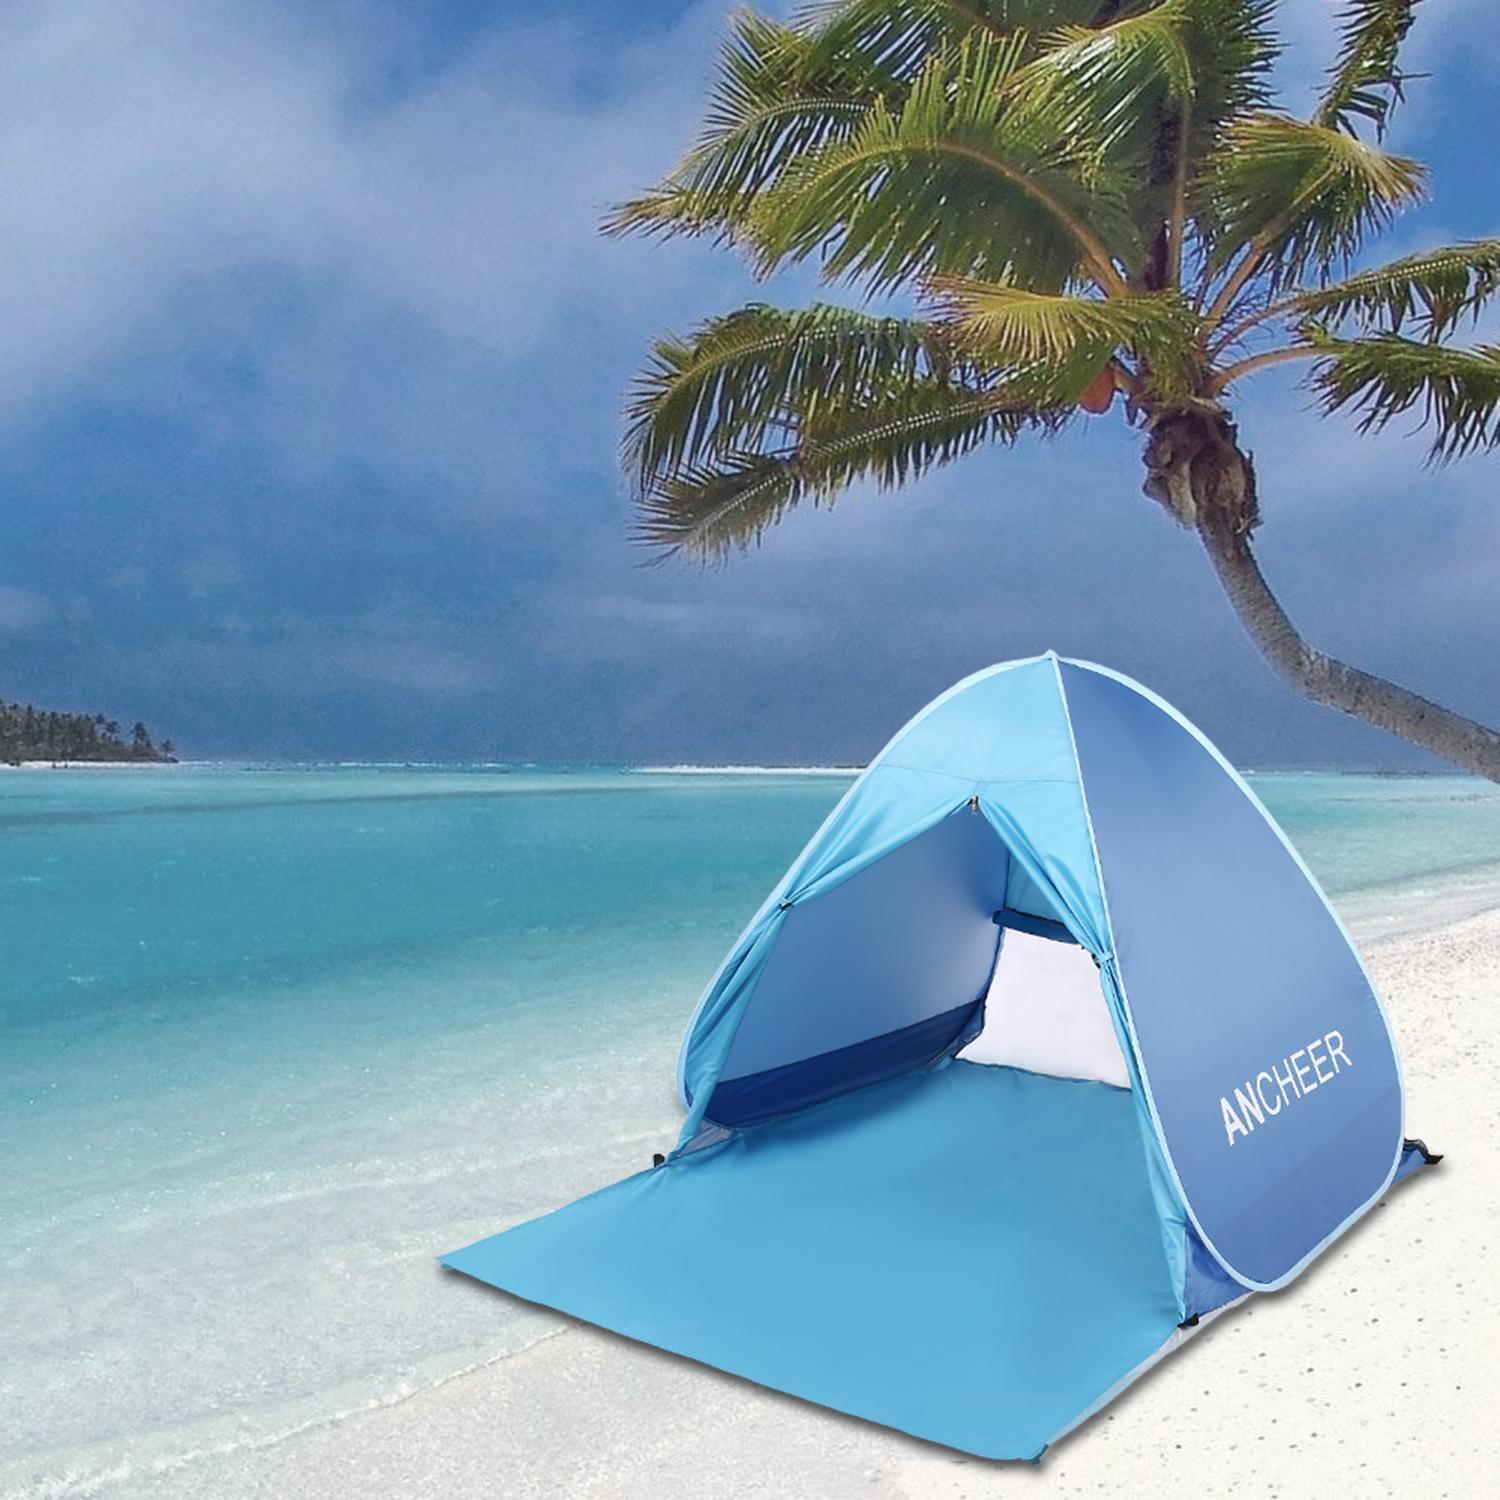 Sun Shelter Pop Up Tent Instant Quick Automatic Beach Tent Outdoors Portable DEAML by